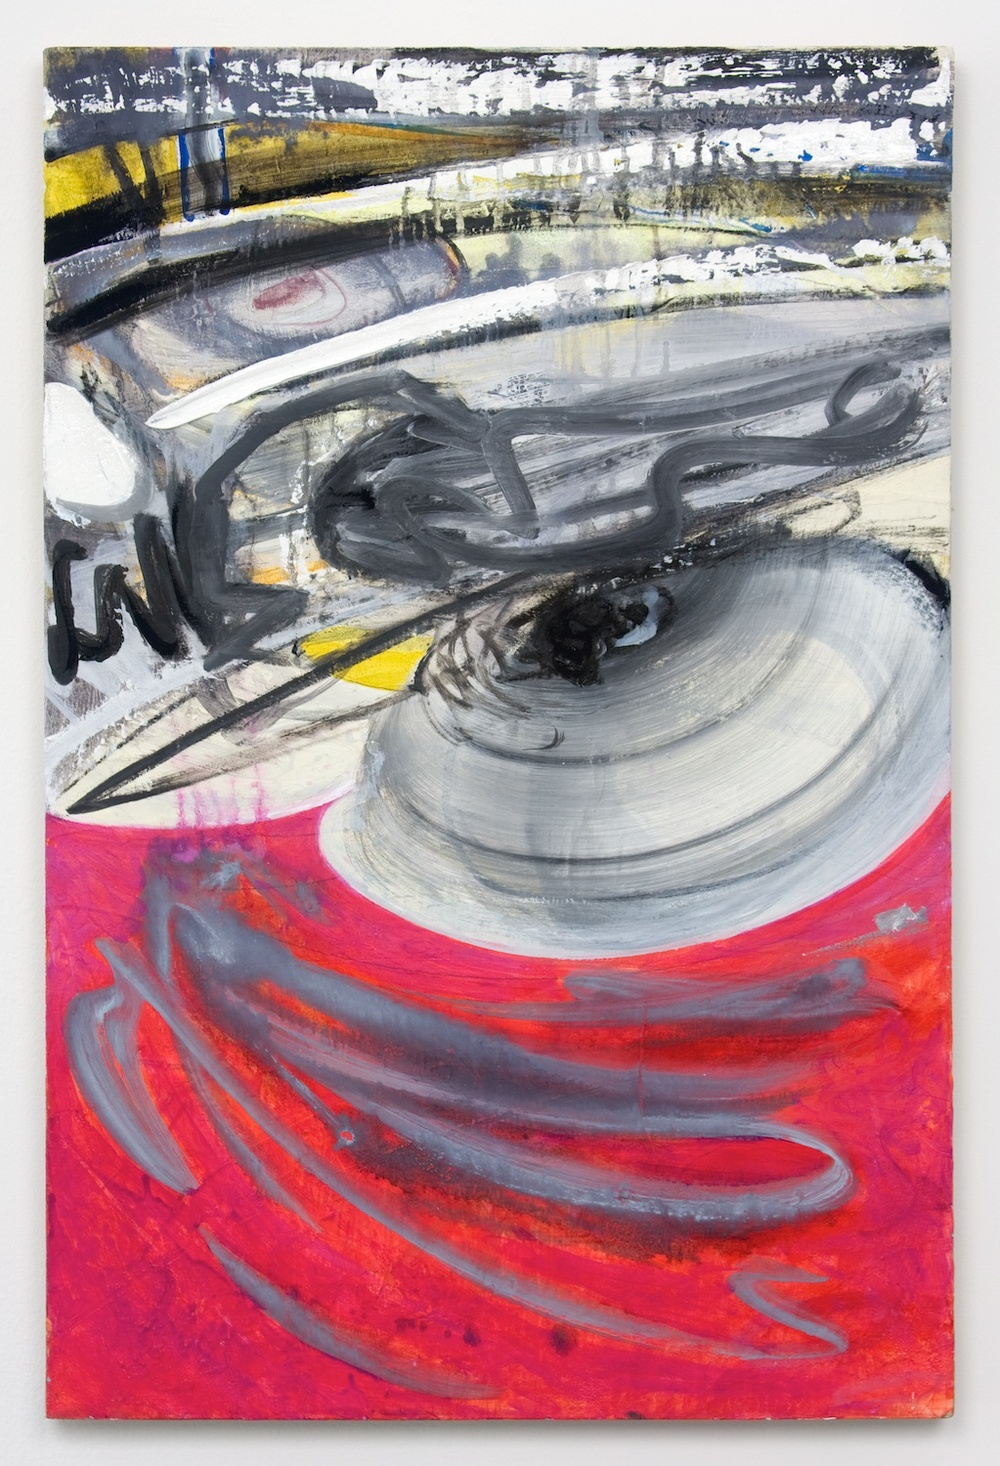 Suzanne McClelland  DRILL  2010 Acrylic and oil on linen 33 ½h x 22 ½w in SM131